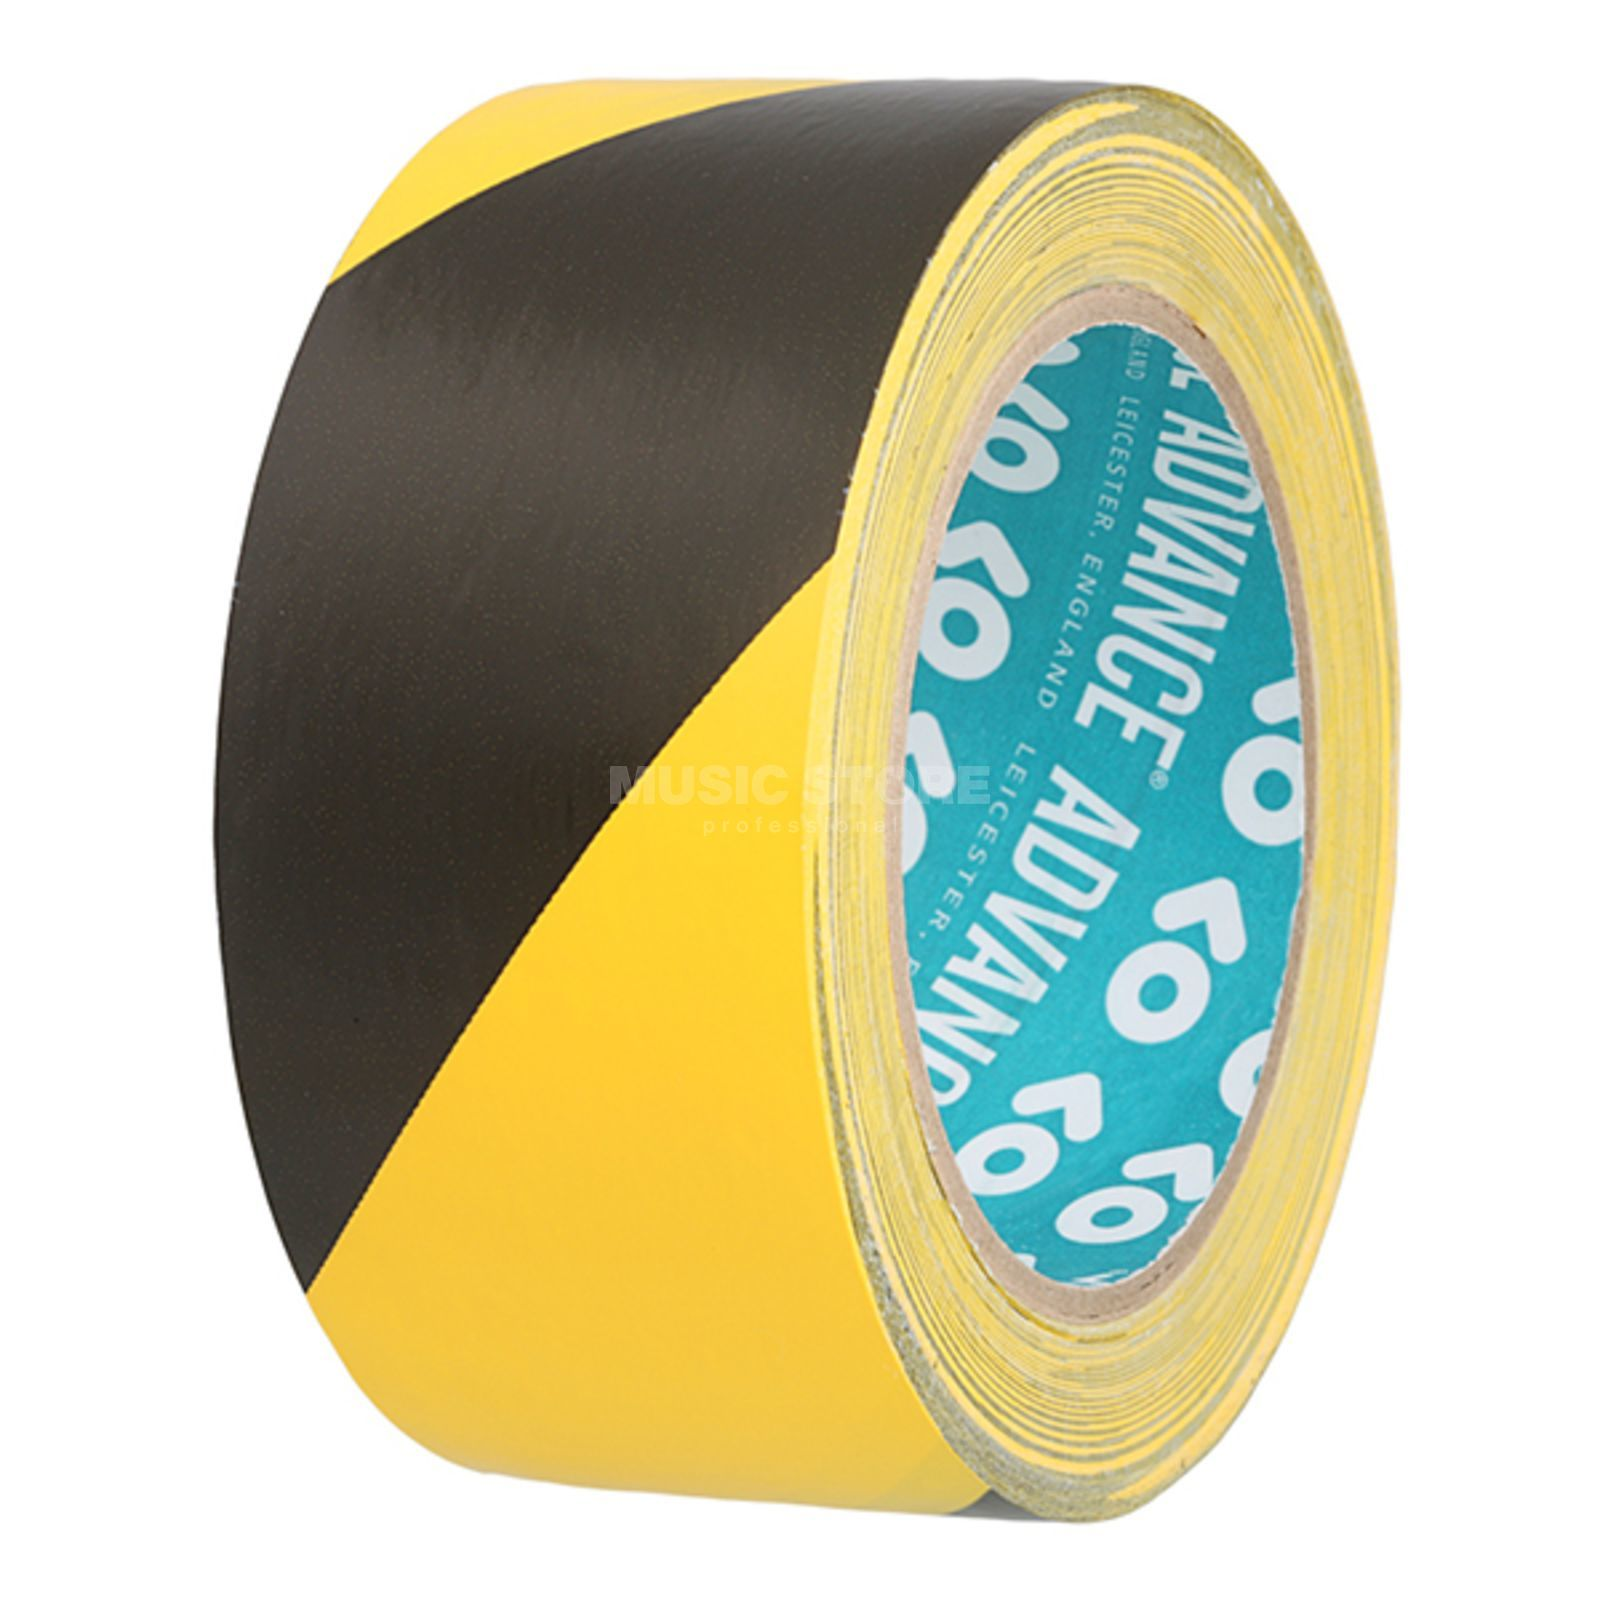 Advance AT8H Hazard Warning Tape yellow/black, 33m, 50mm Produktbillede